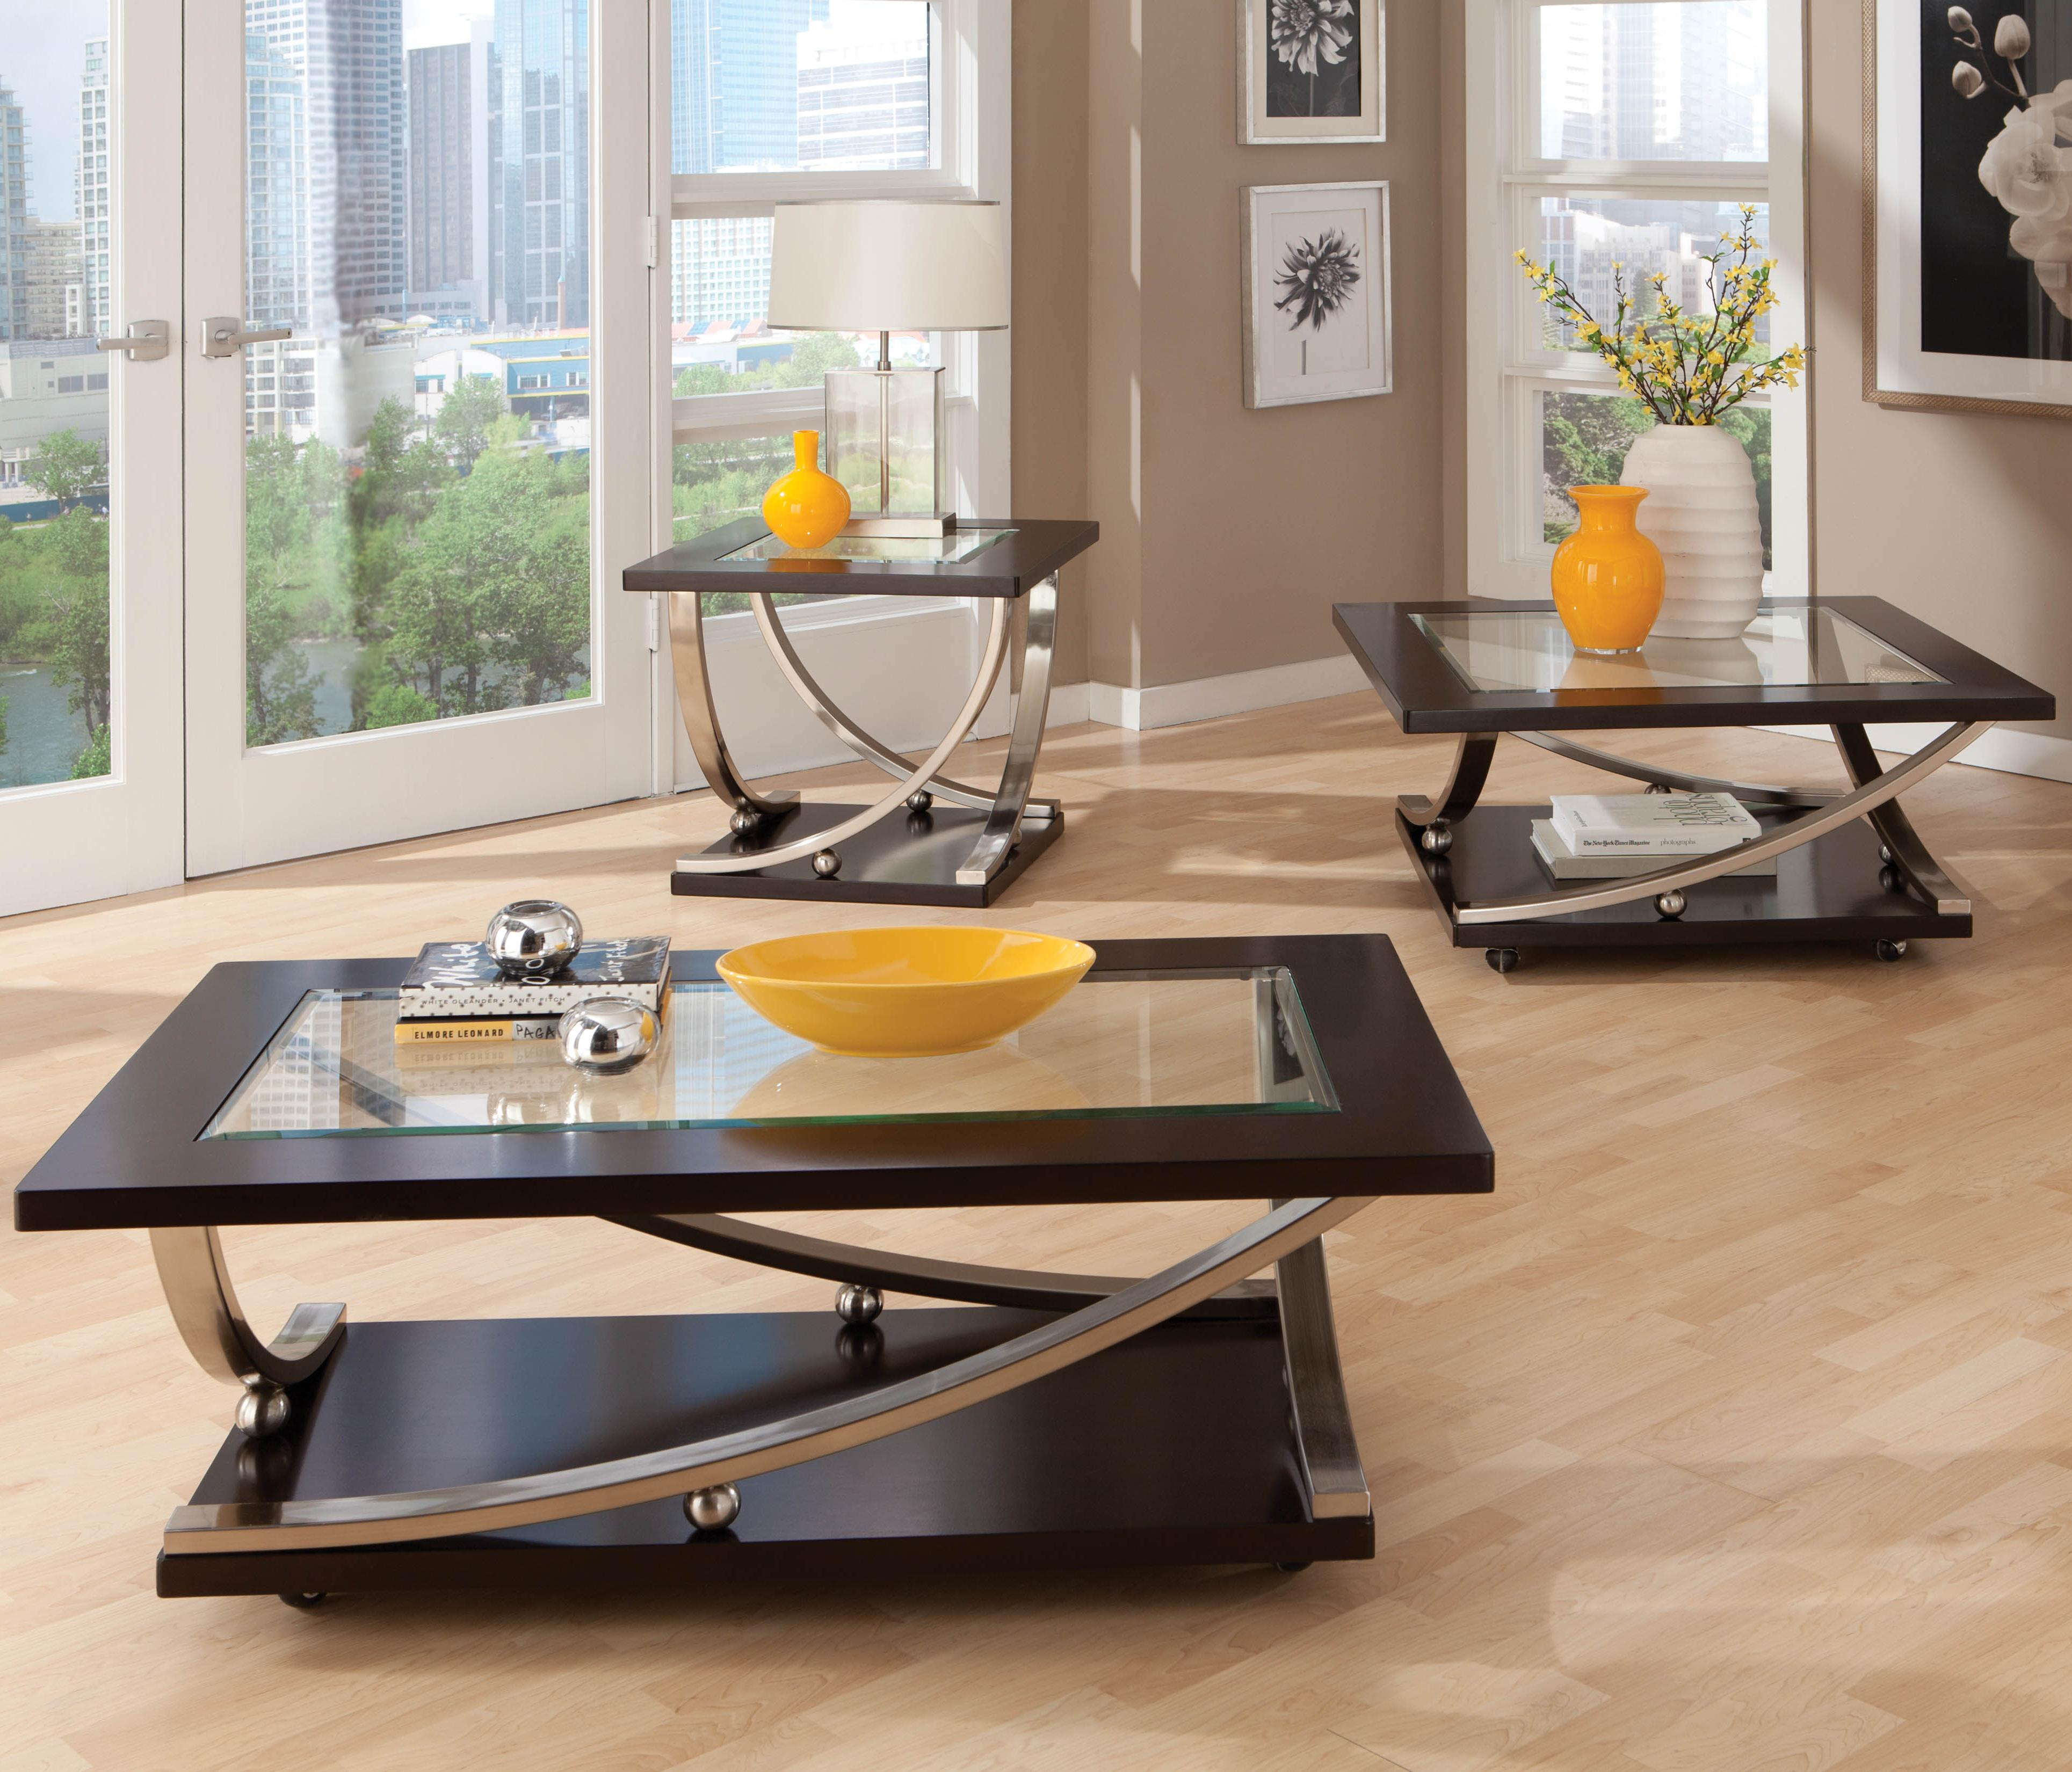 Glass Coffee Tables Furniture Village: Melrose Square Glass Top Cocktail Table With Casters By